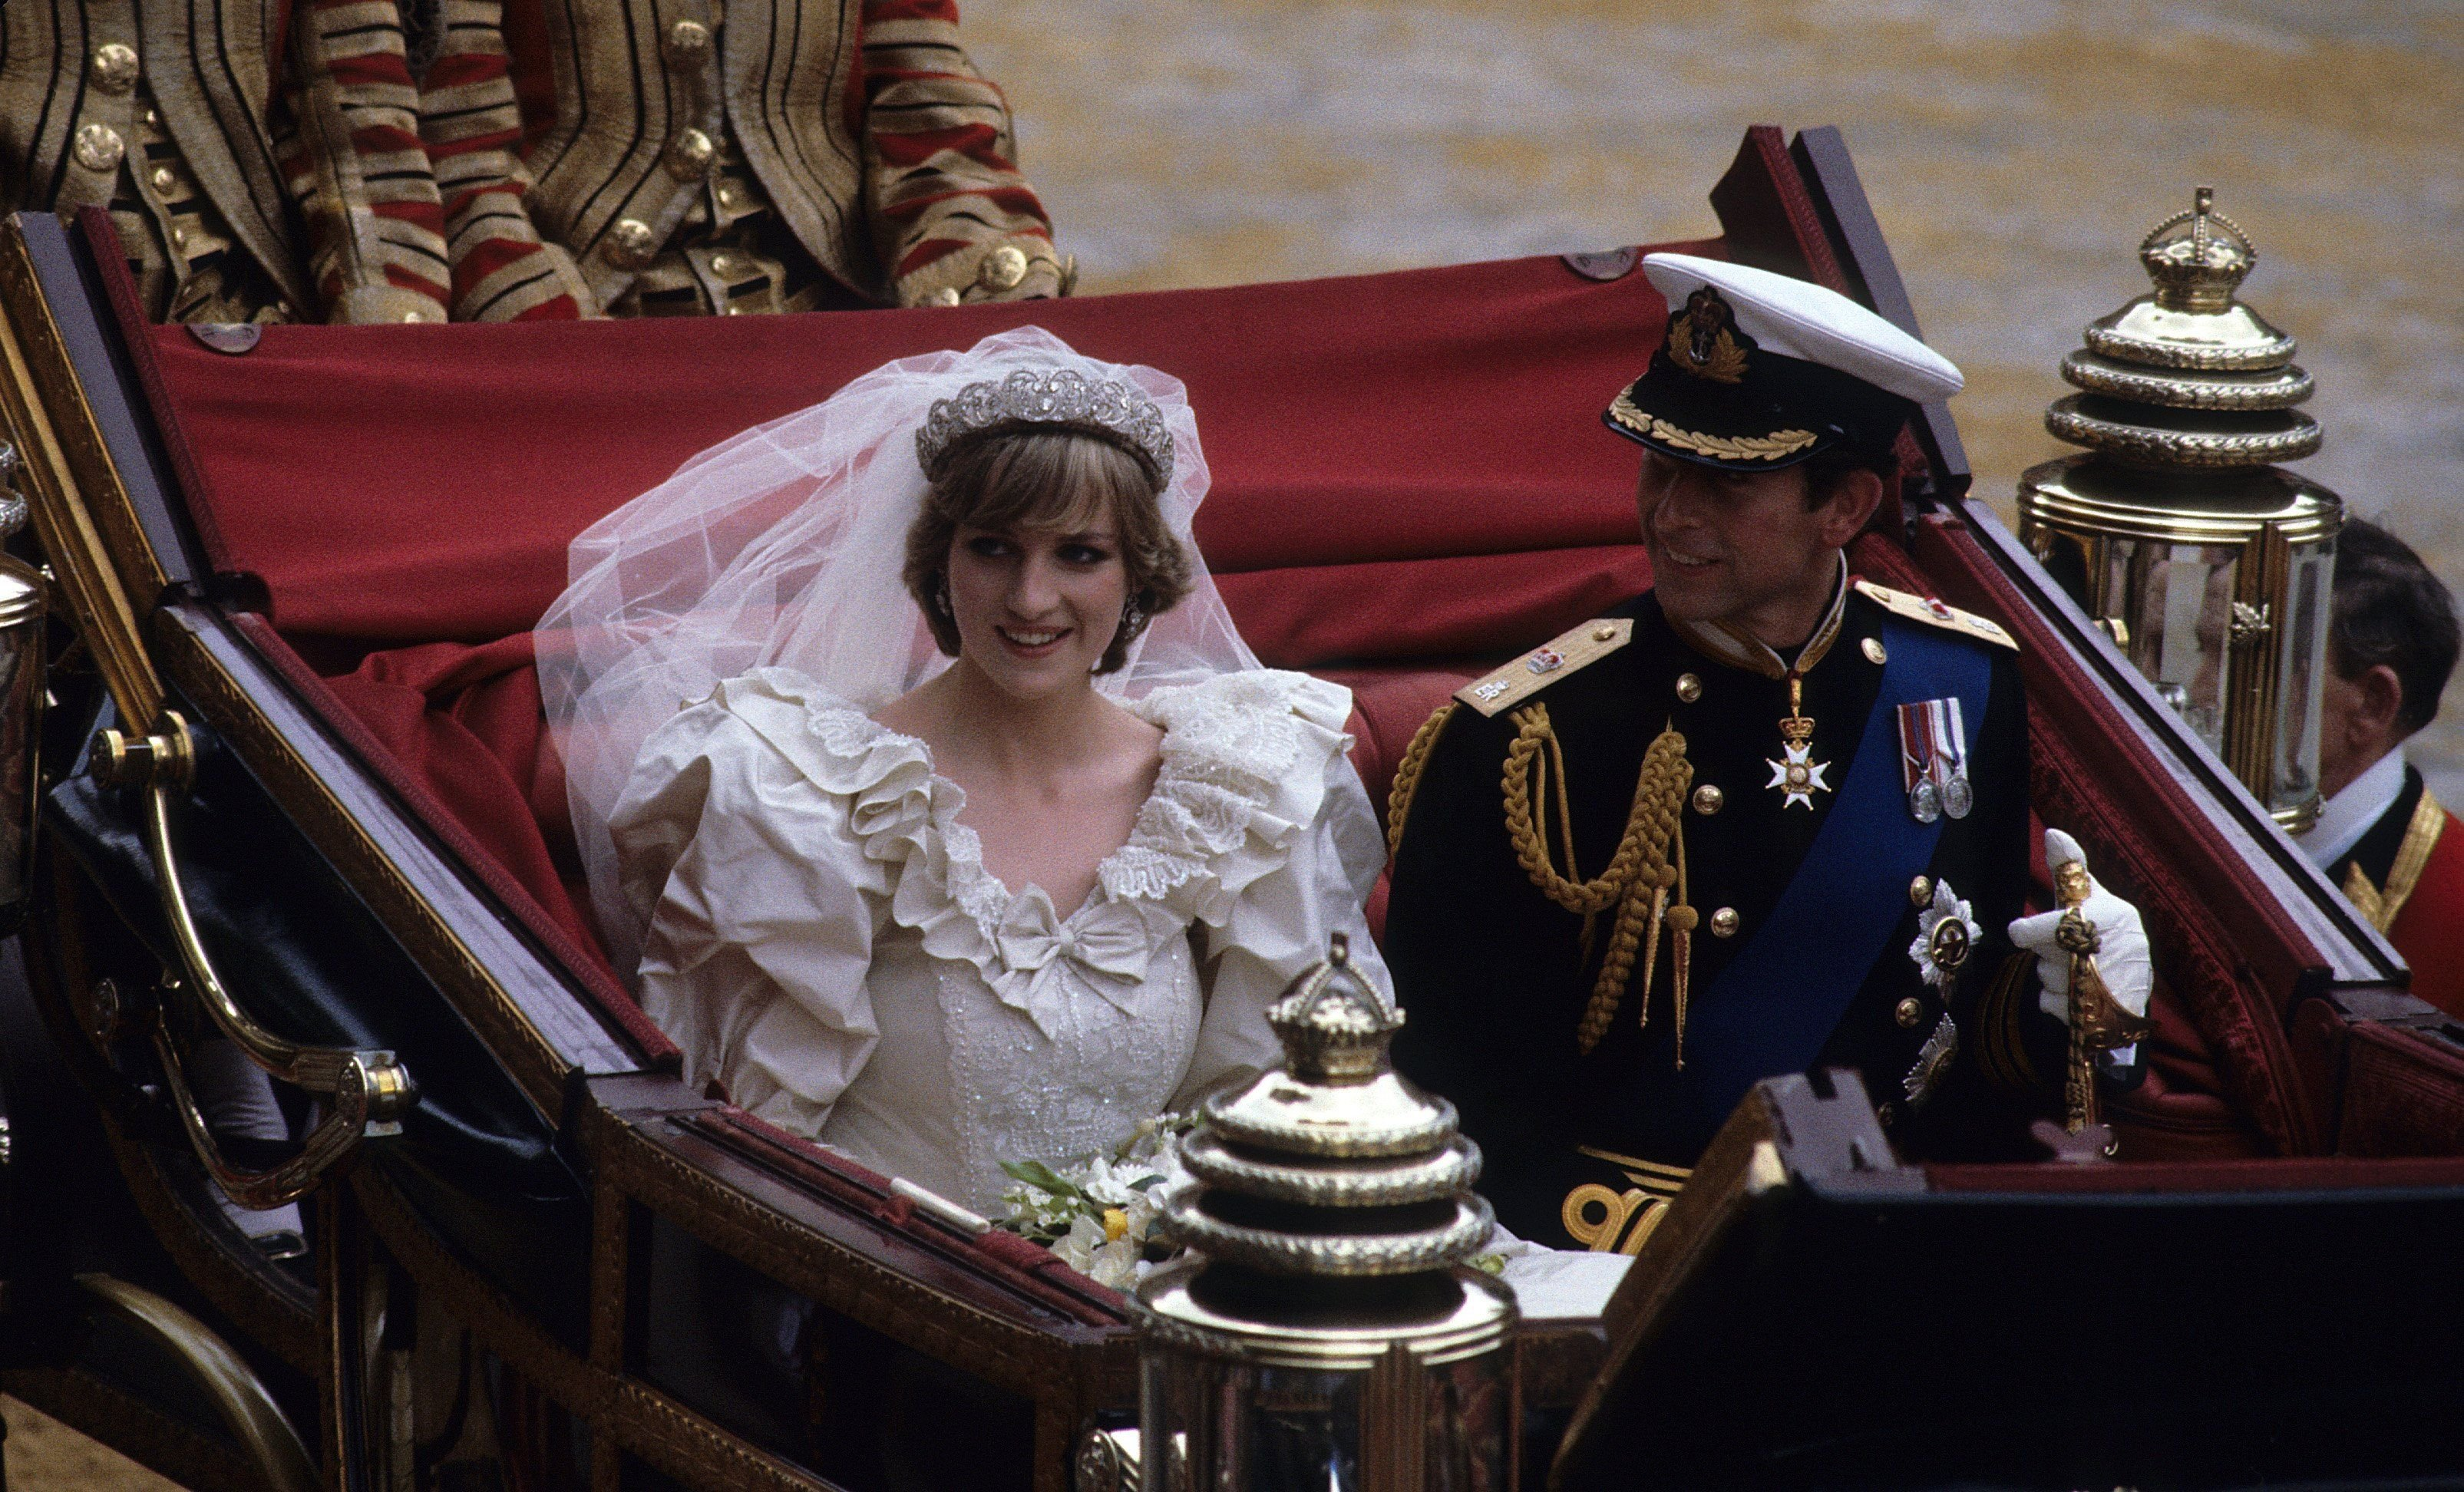 Prince Charles,and Princess Diana leave St. Paul's Cathedral in a carriage following their wedding. | Source: Getty Images